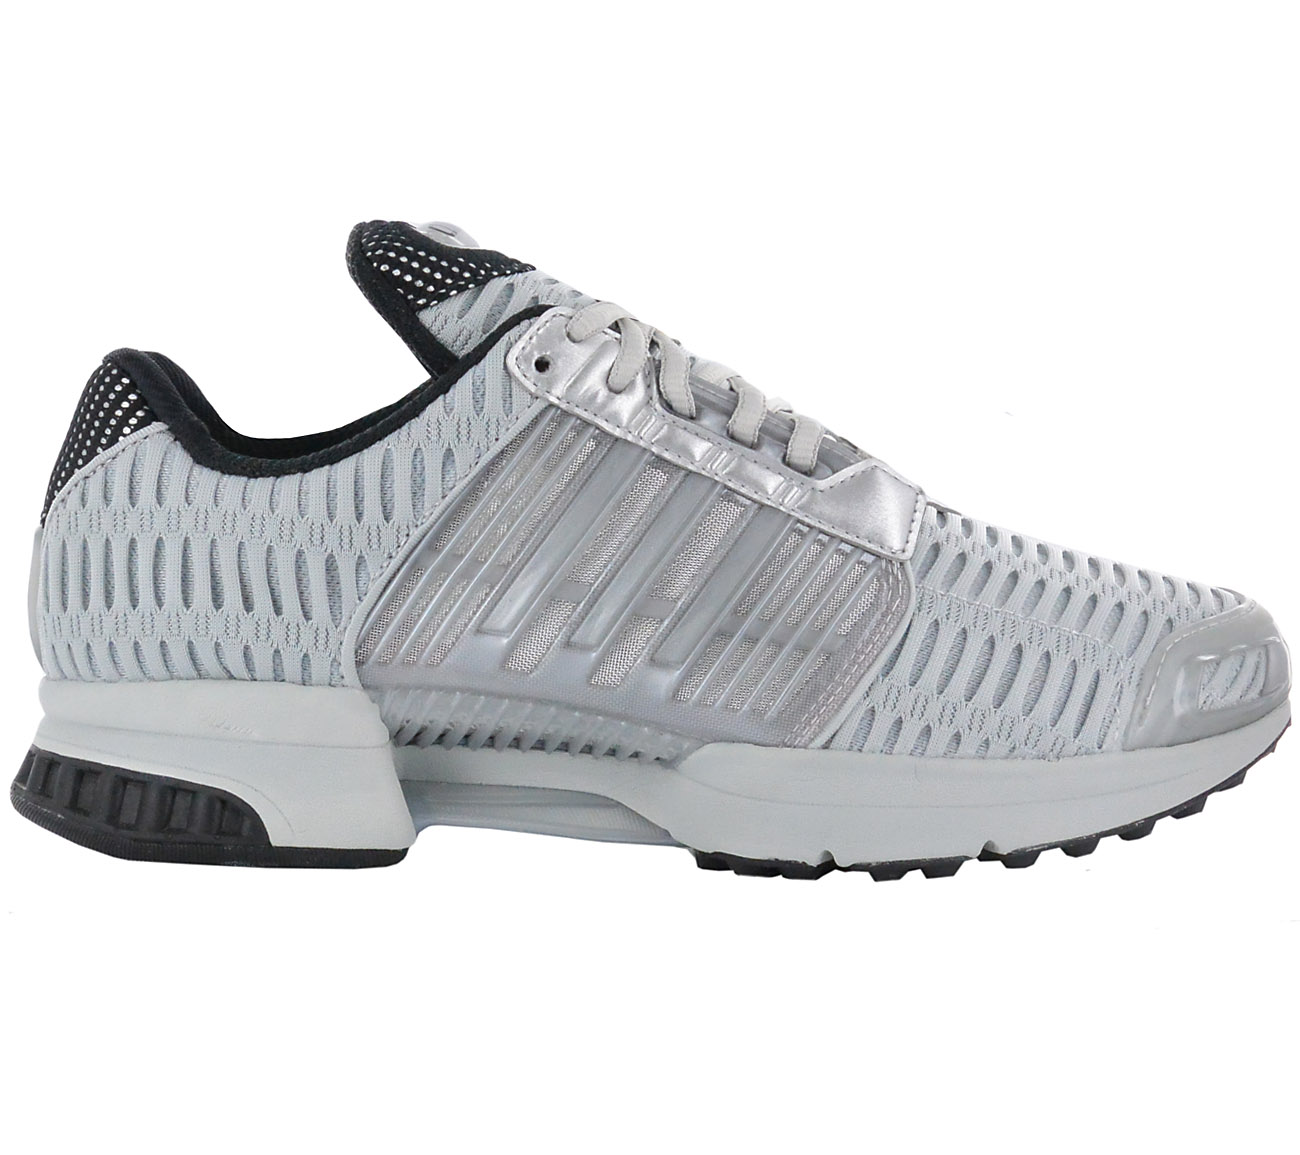 fa567557d Adidas Originals Climacool 1 Trainers Silver Men s Shoes Clima Cool New  ba8570